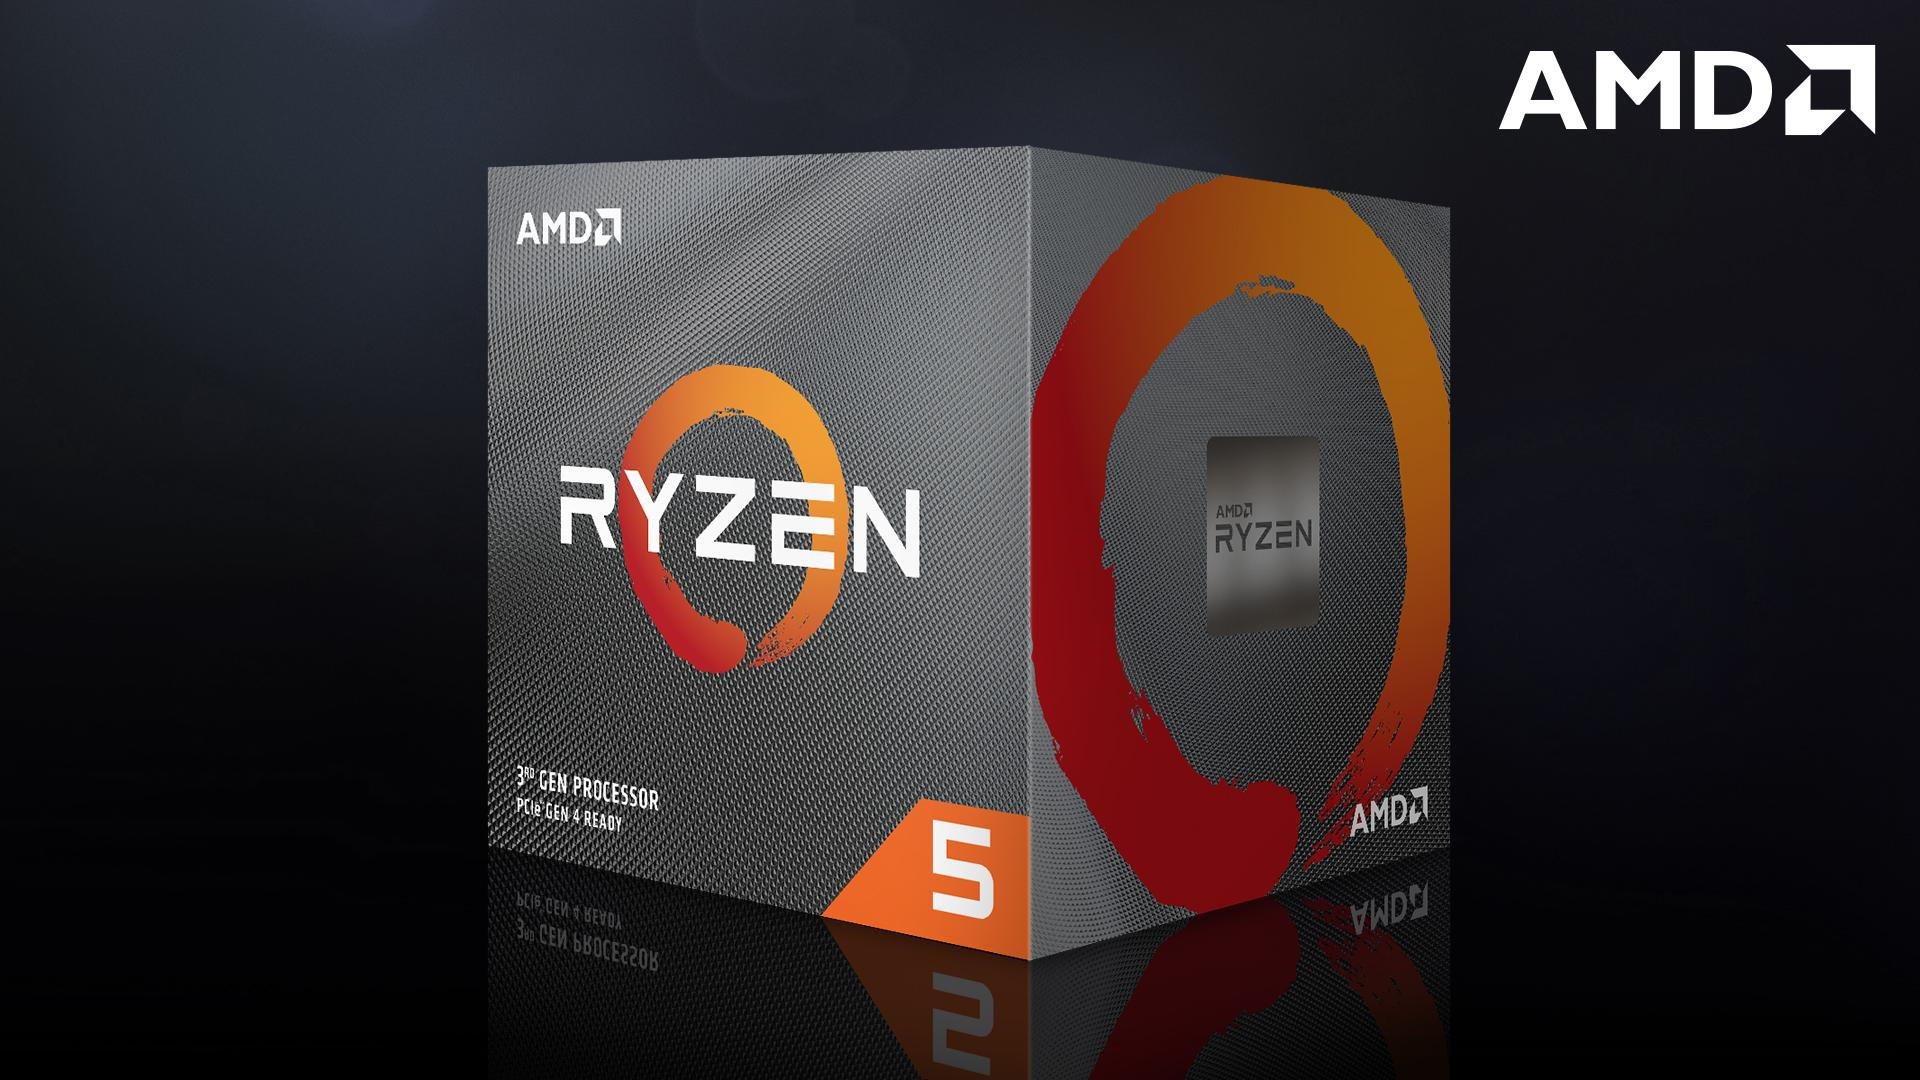 wccftech.com - Hassan Mujtaba - The Ryzen 5 3500X Is Currently The Cheapest AMD 6 Core Desktop CPU You Can Buy For Under $200 US